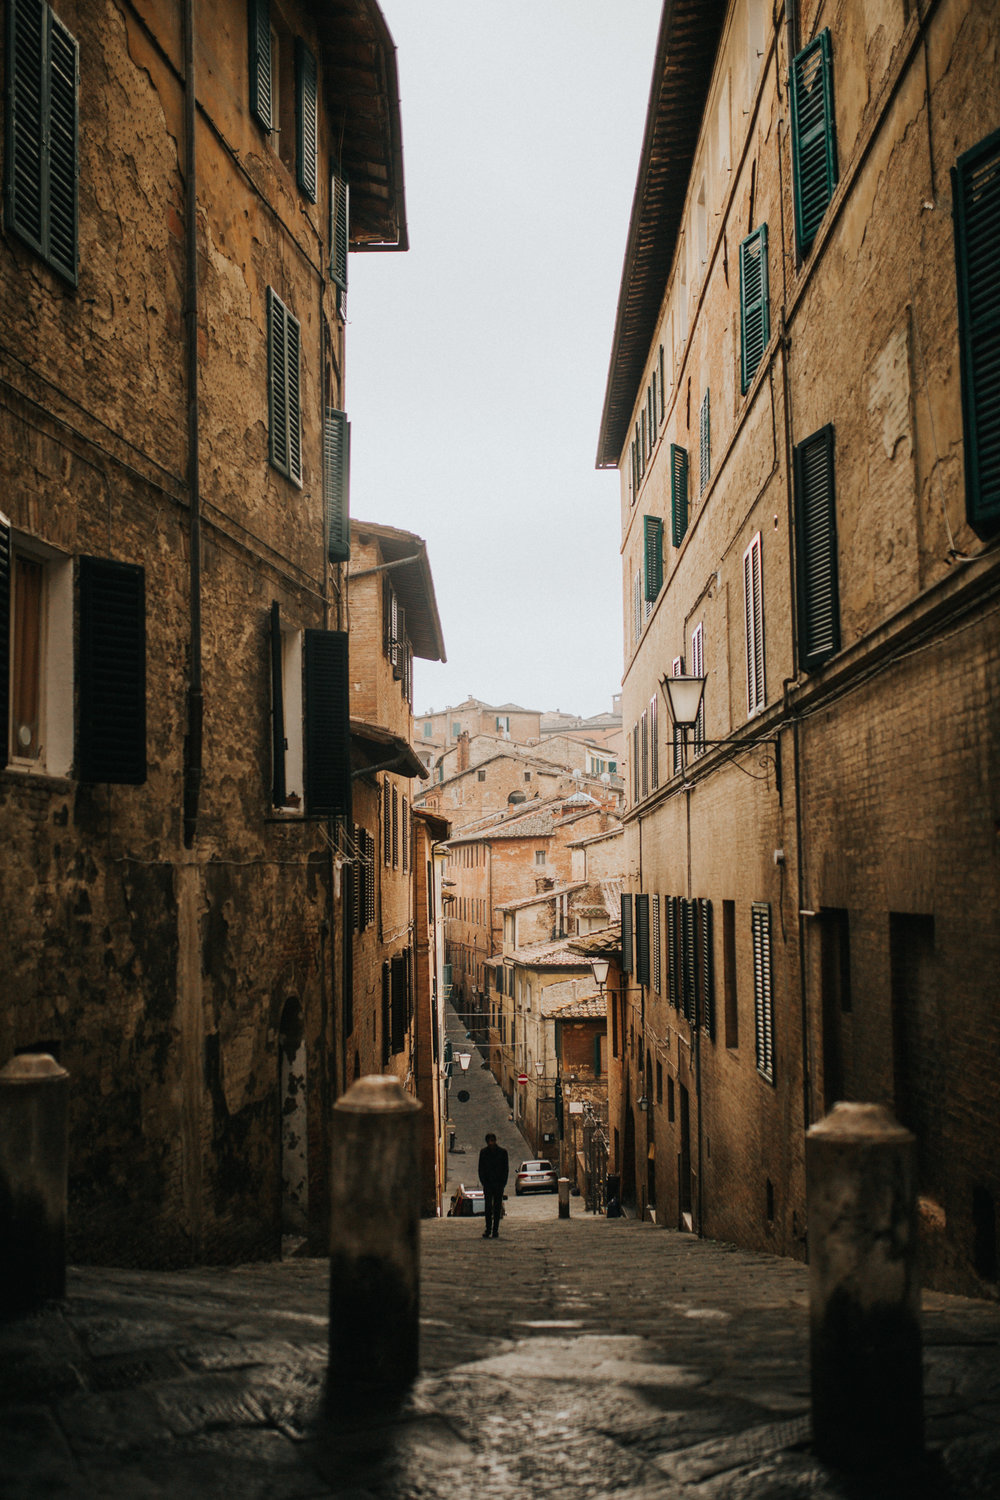 Italy Roadtrip Travel Photography - Montepulciano